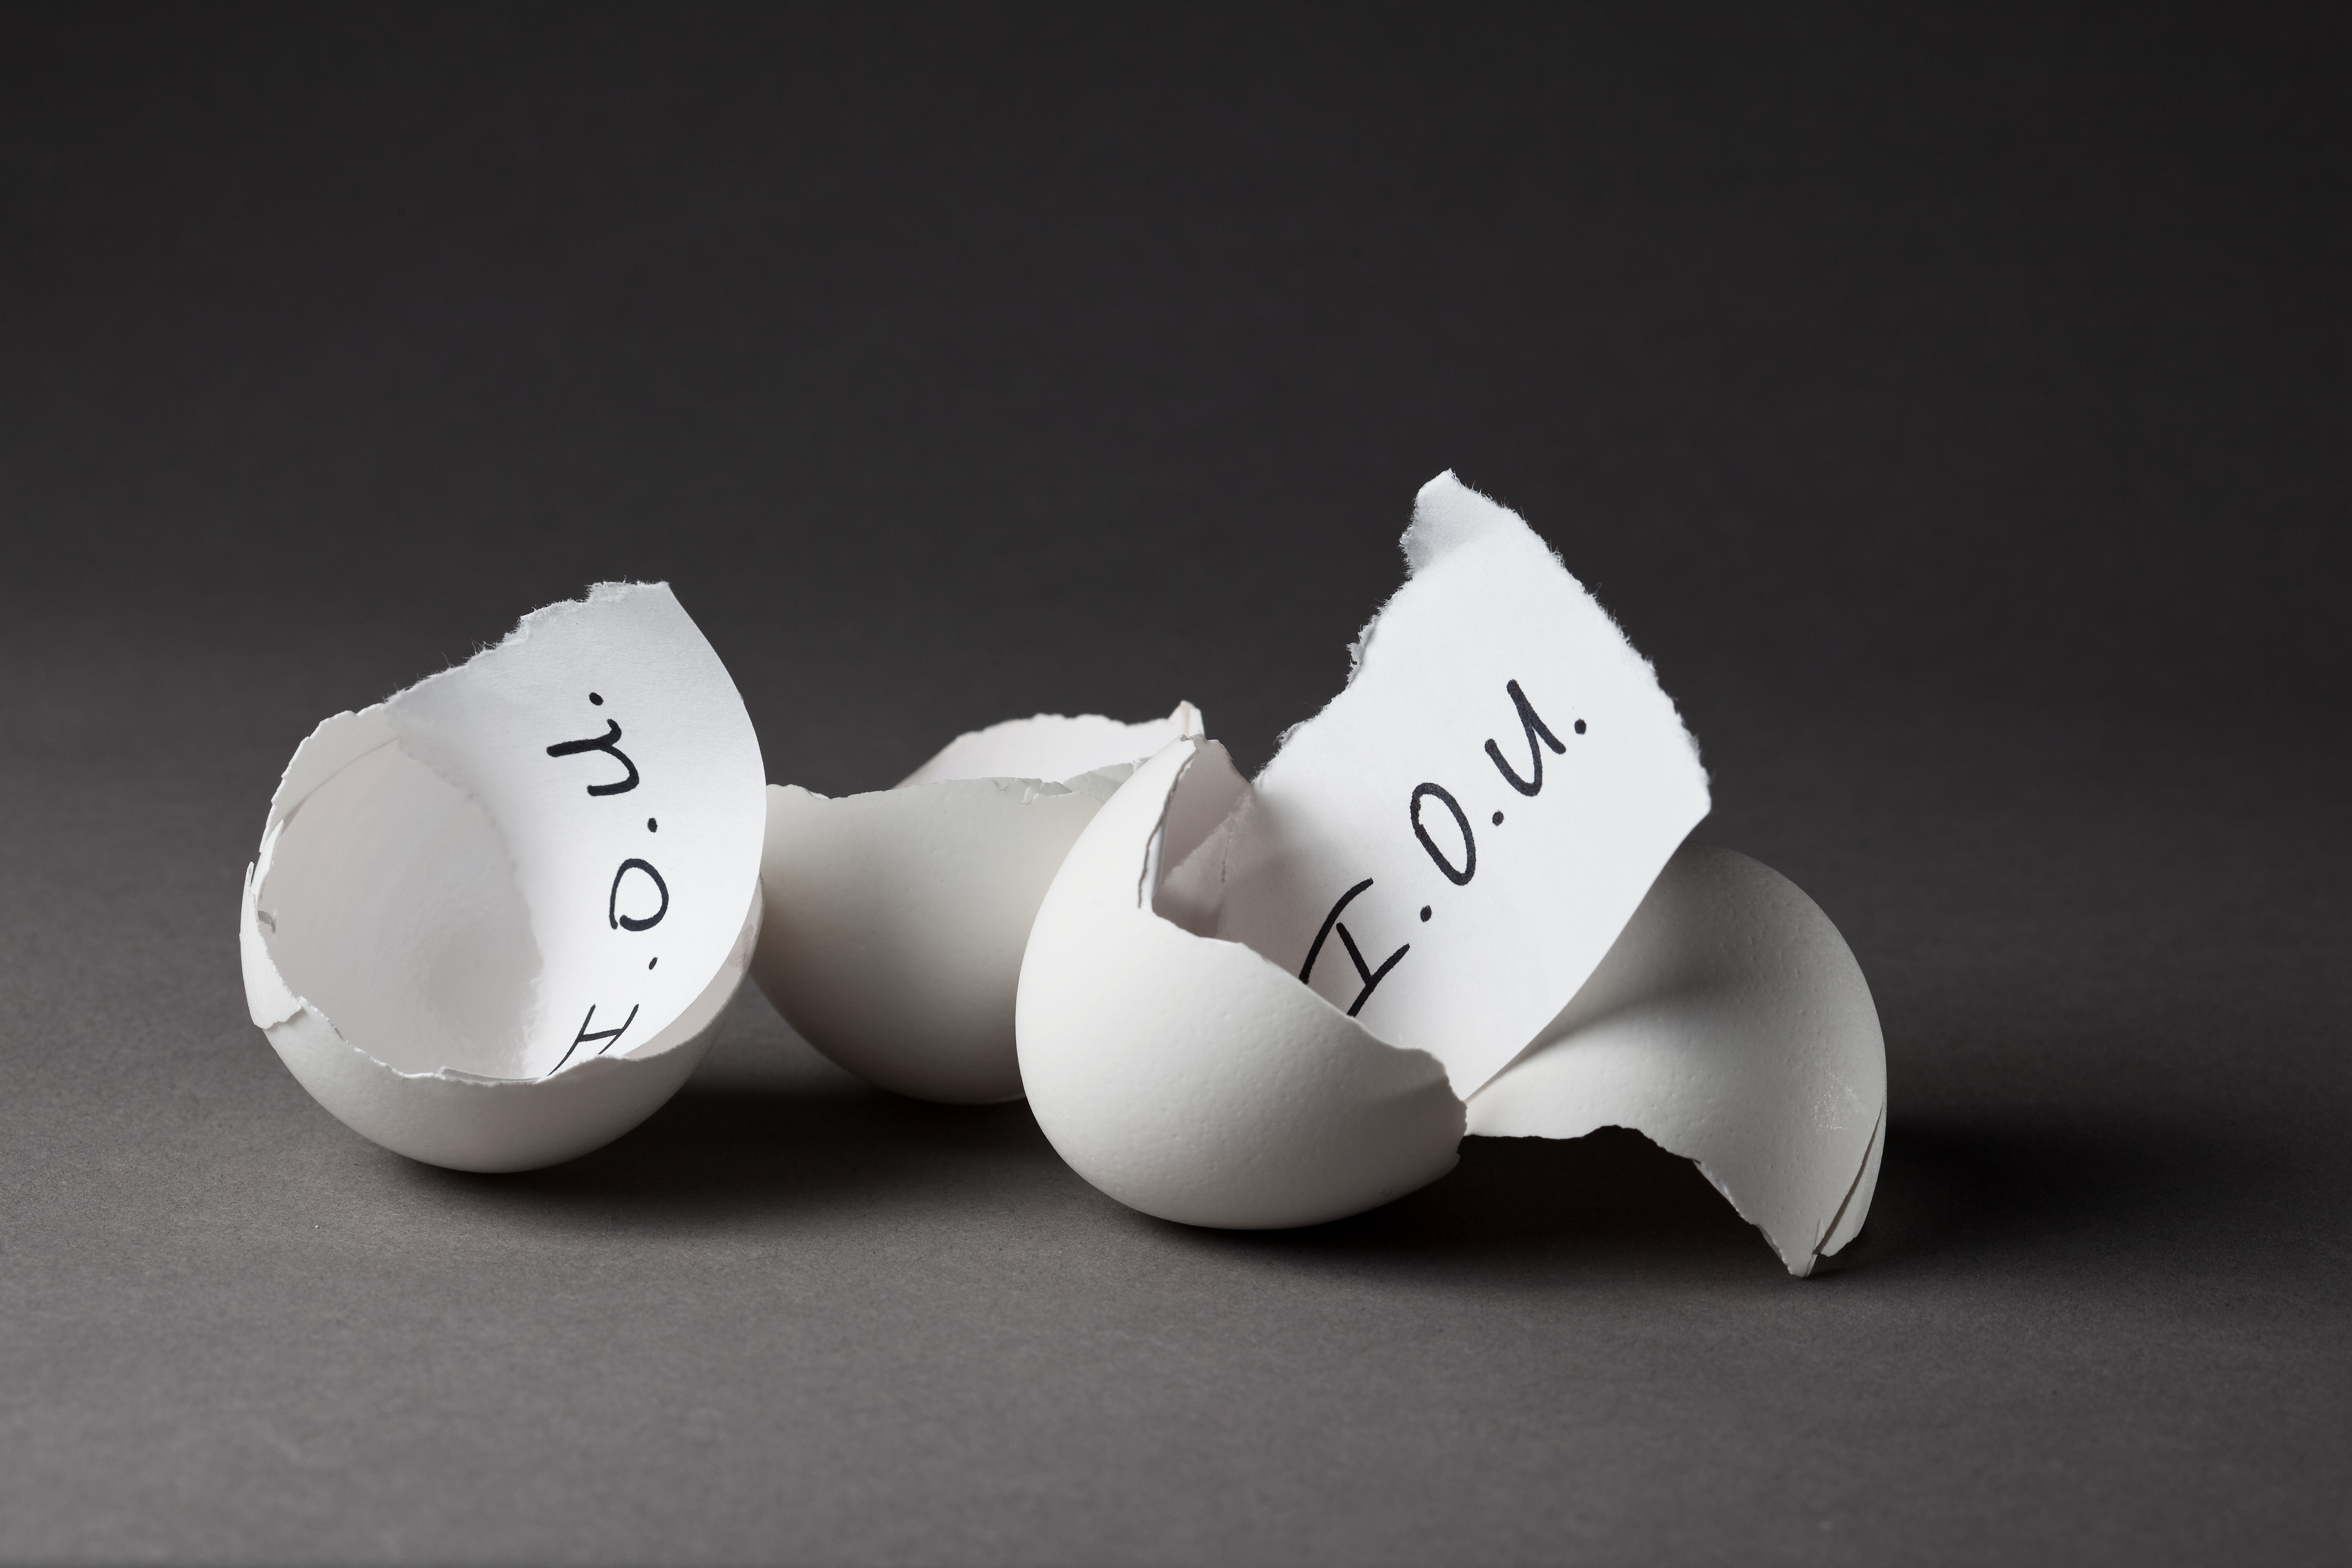 4 Reasons Why You Shouldn't Borrow From Your 401(k)